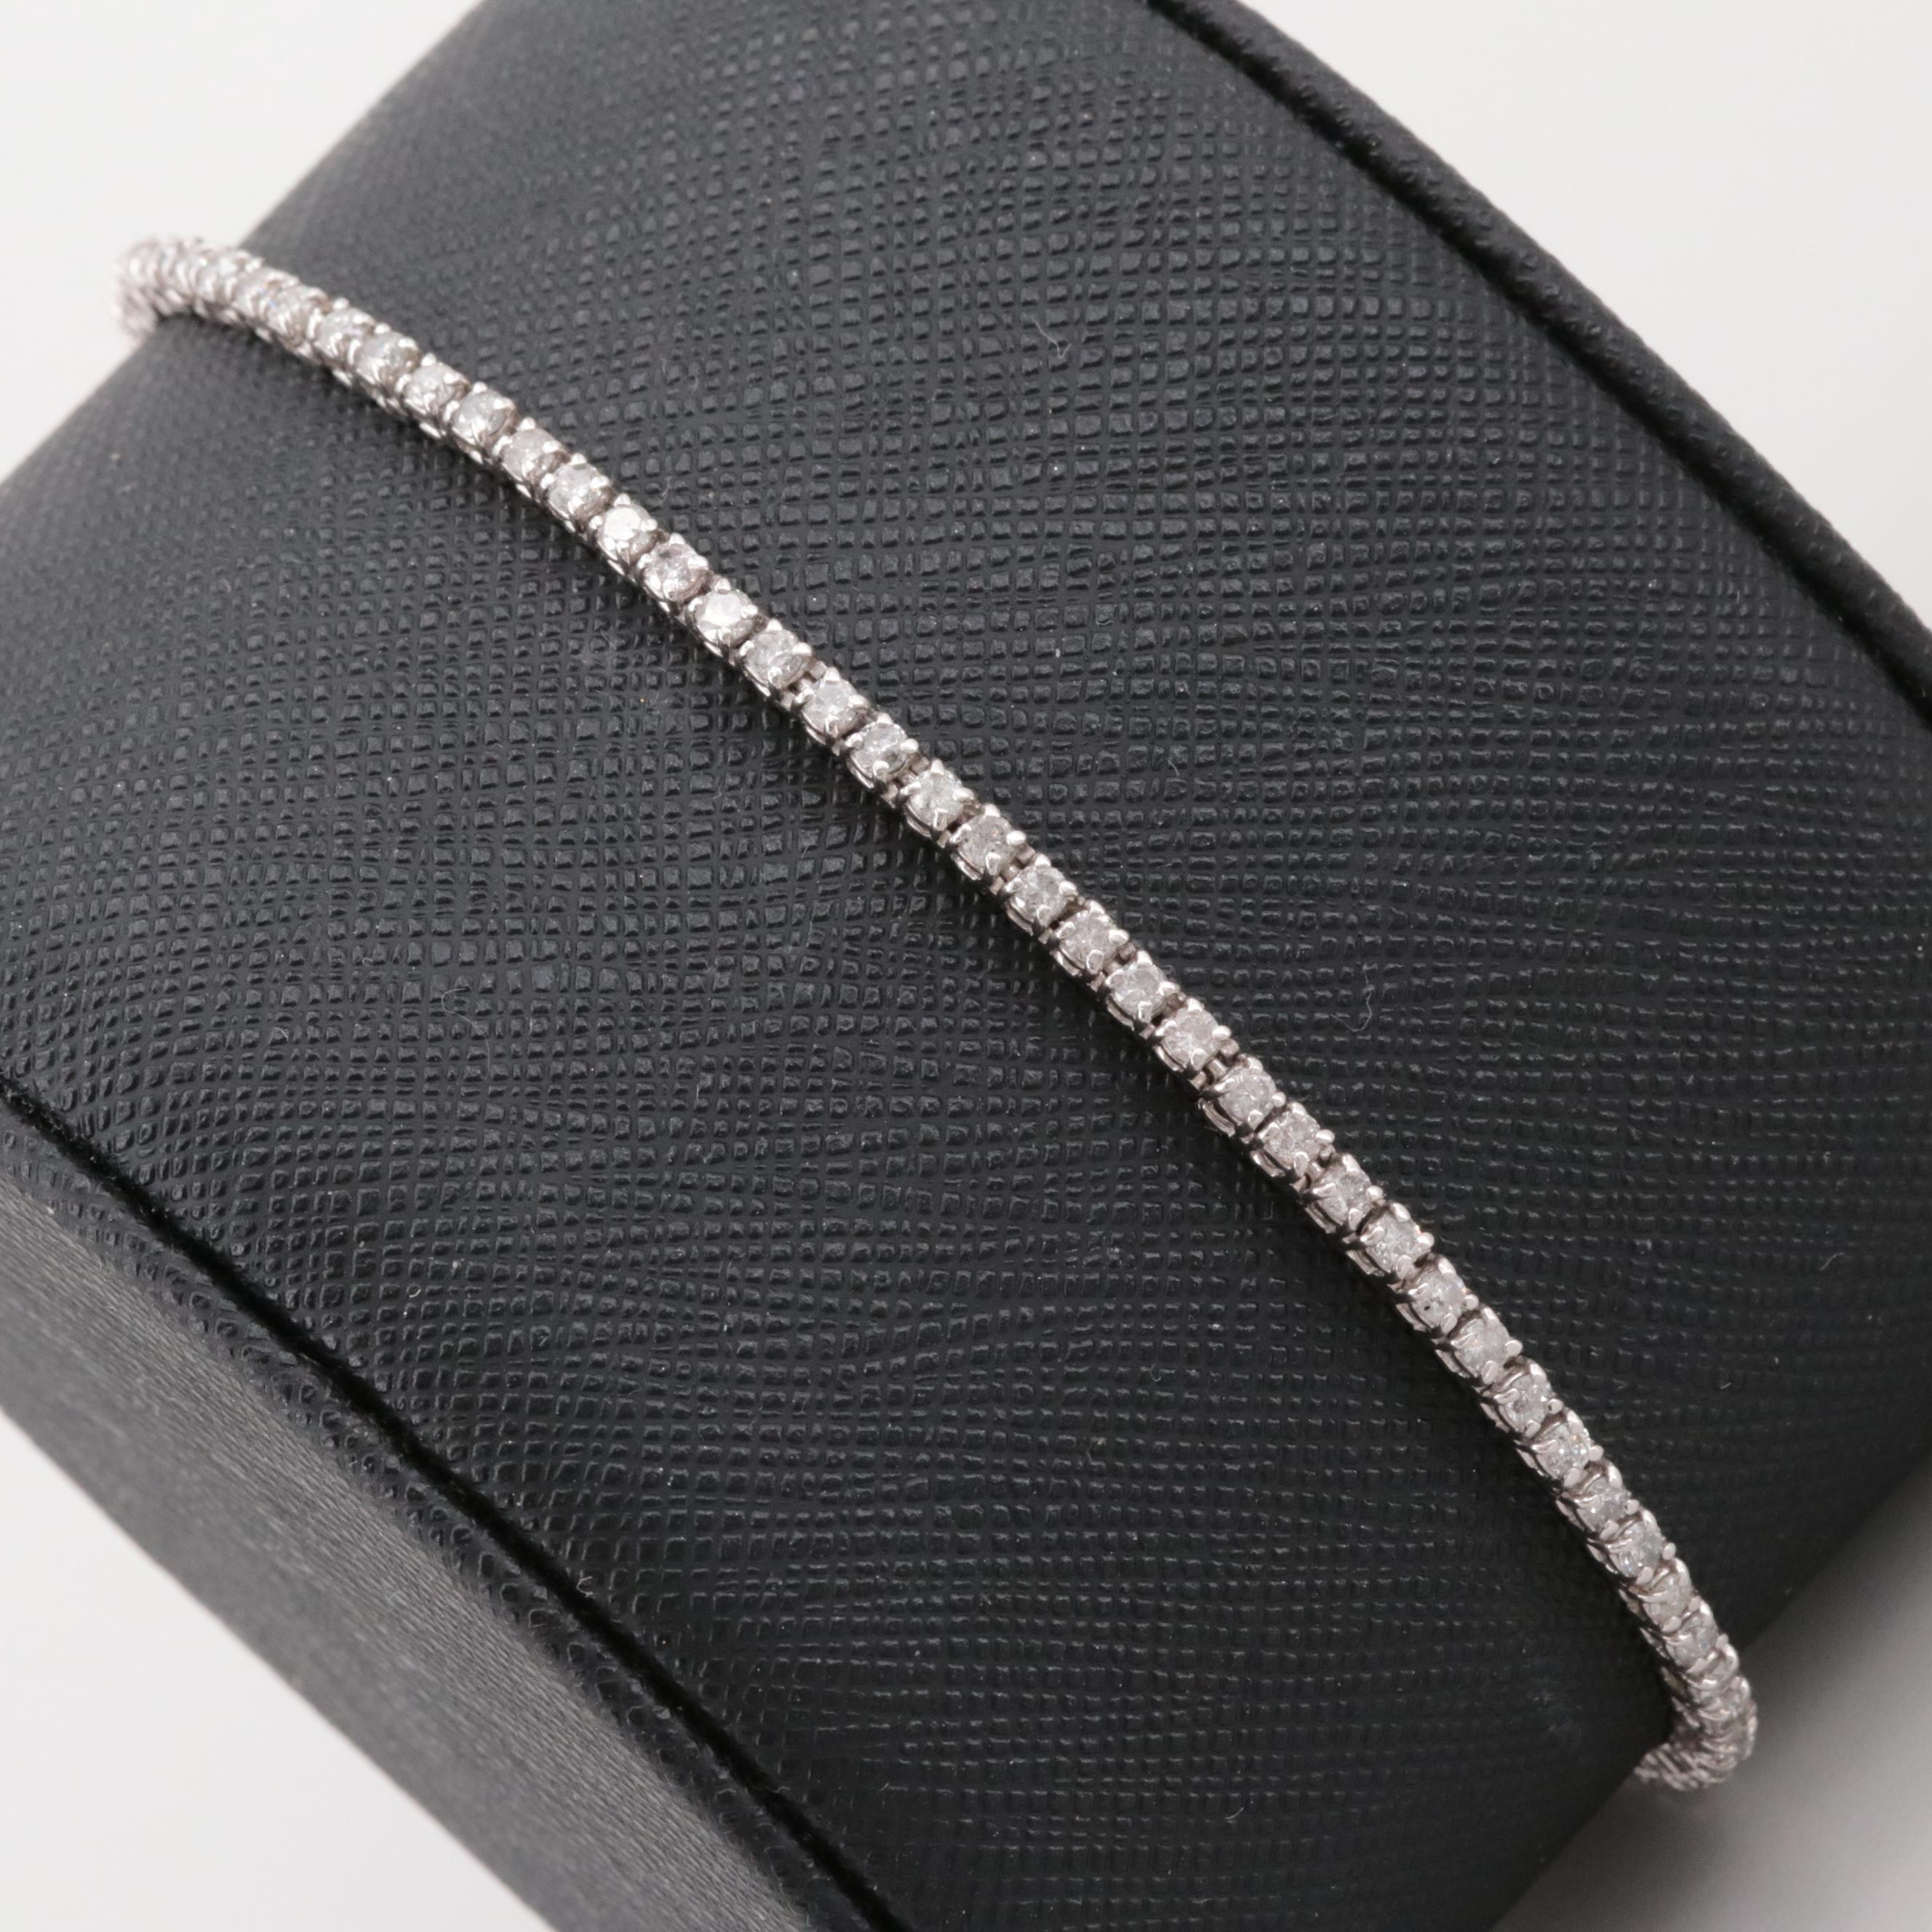 14K White Gold 0.95 CTW Diamond Tennis Bracelet